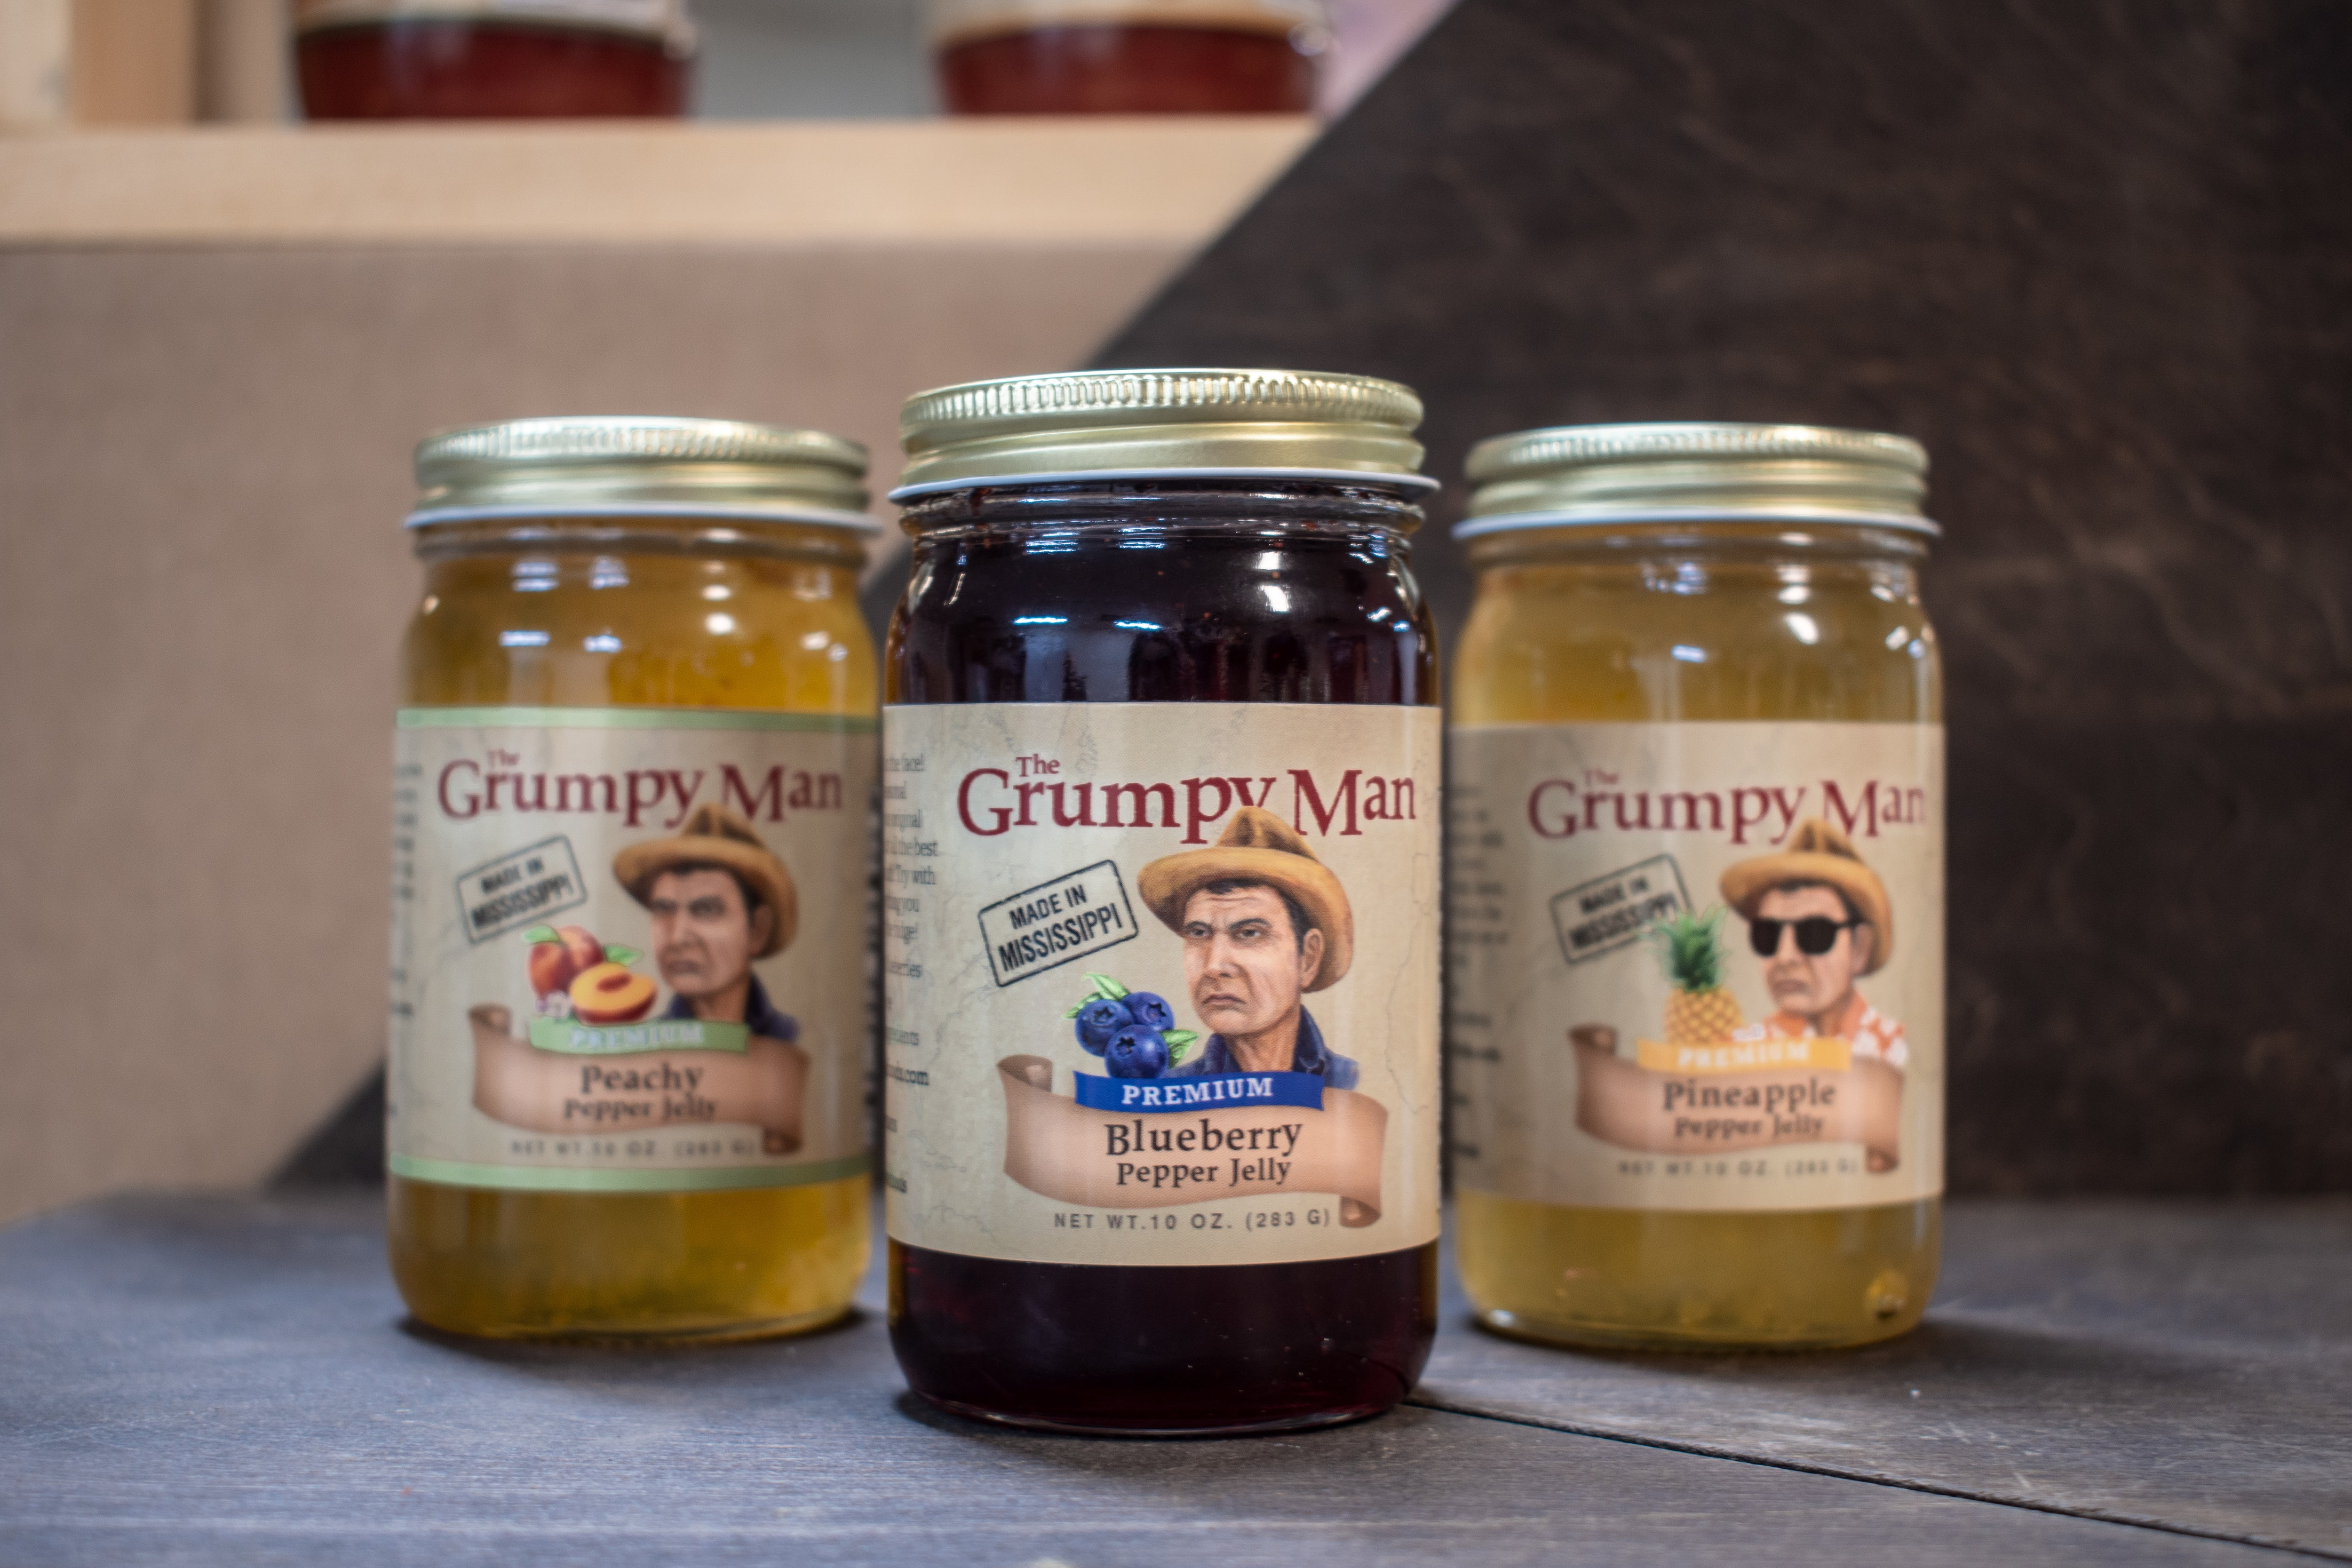 Summer Pepper Jelly (Peachy, Pineapple & Blueberry)